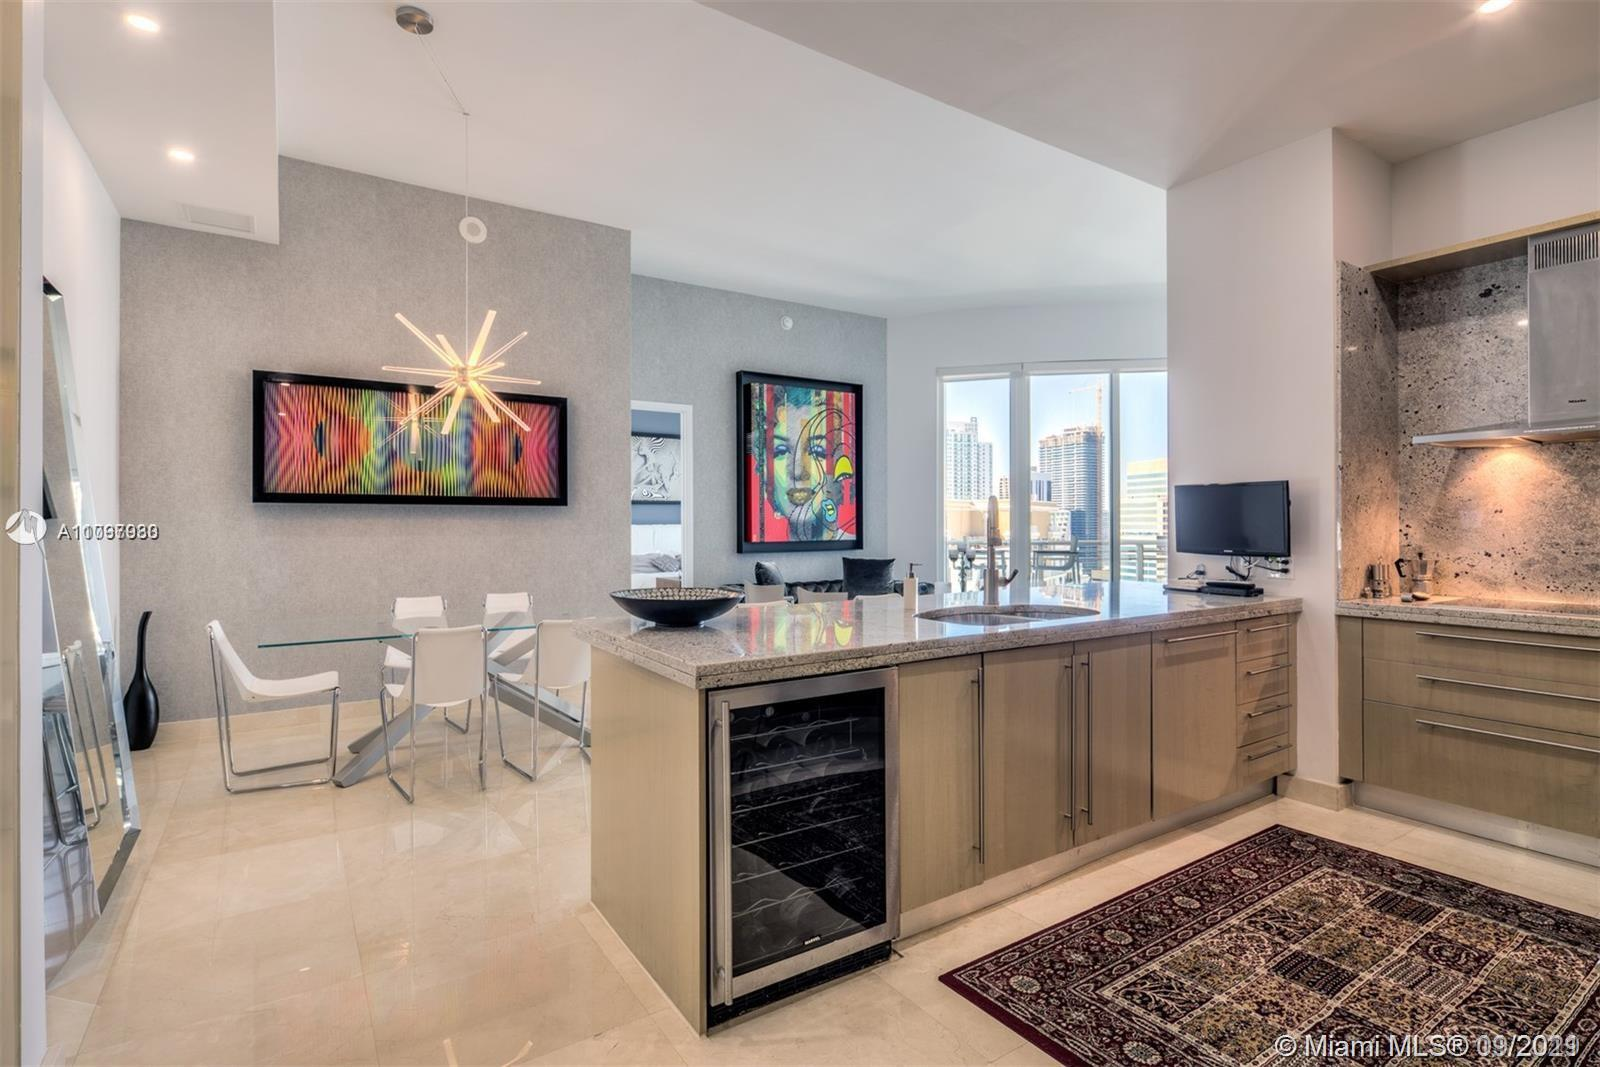 Beautiful unit in Asia Condo. 2/2 1/2 with marble floors, high ceilings, private elevator, elegant kitchen with beautiful views. Amenities include tennis, pool, gym, storage, party room, racquetball, jacuzzi, sauna and 24-hour valet.